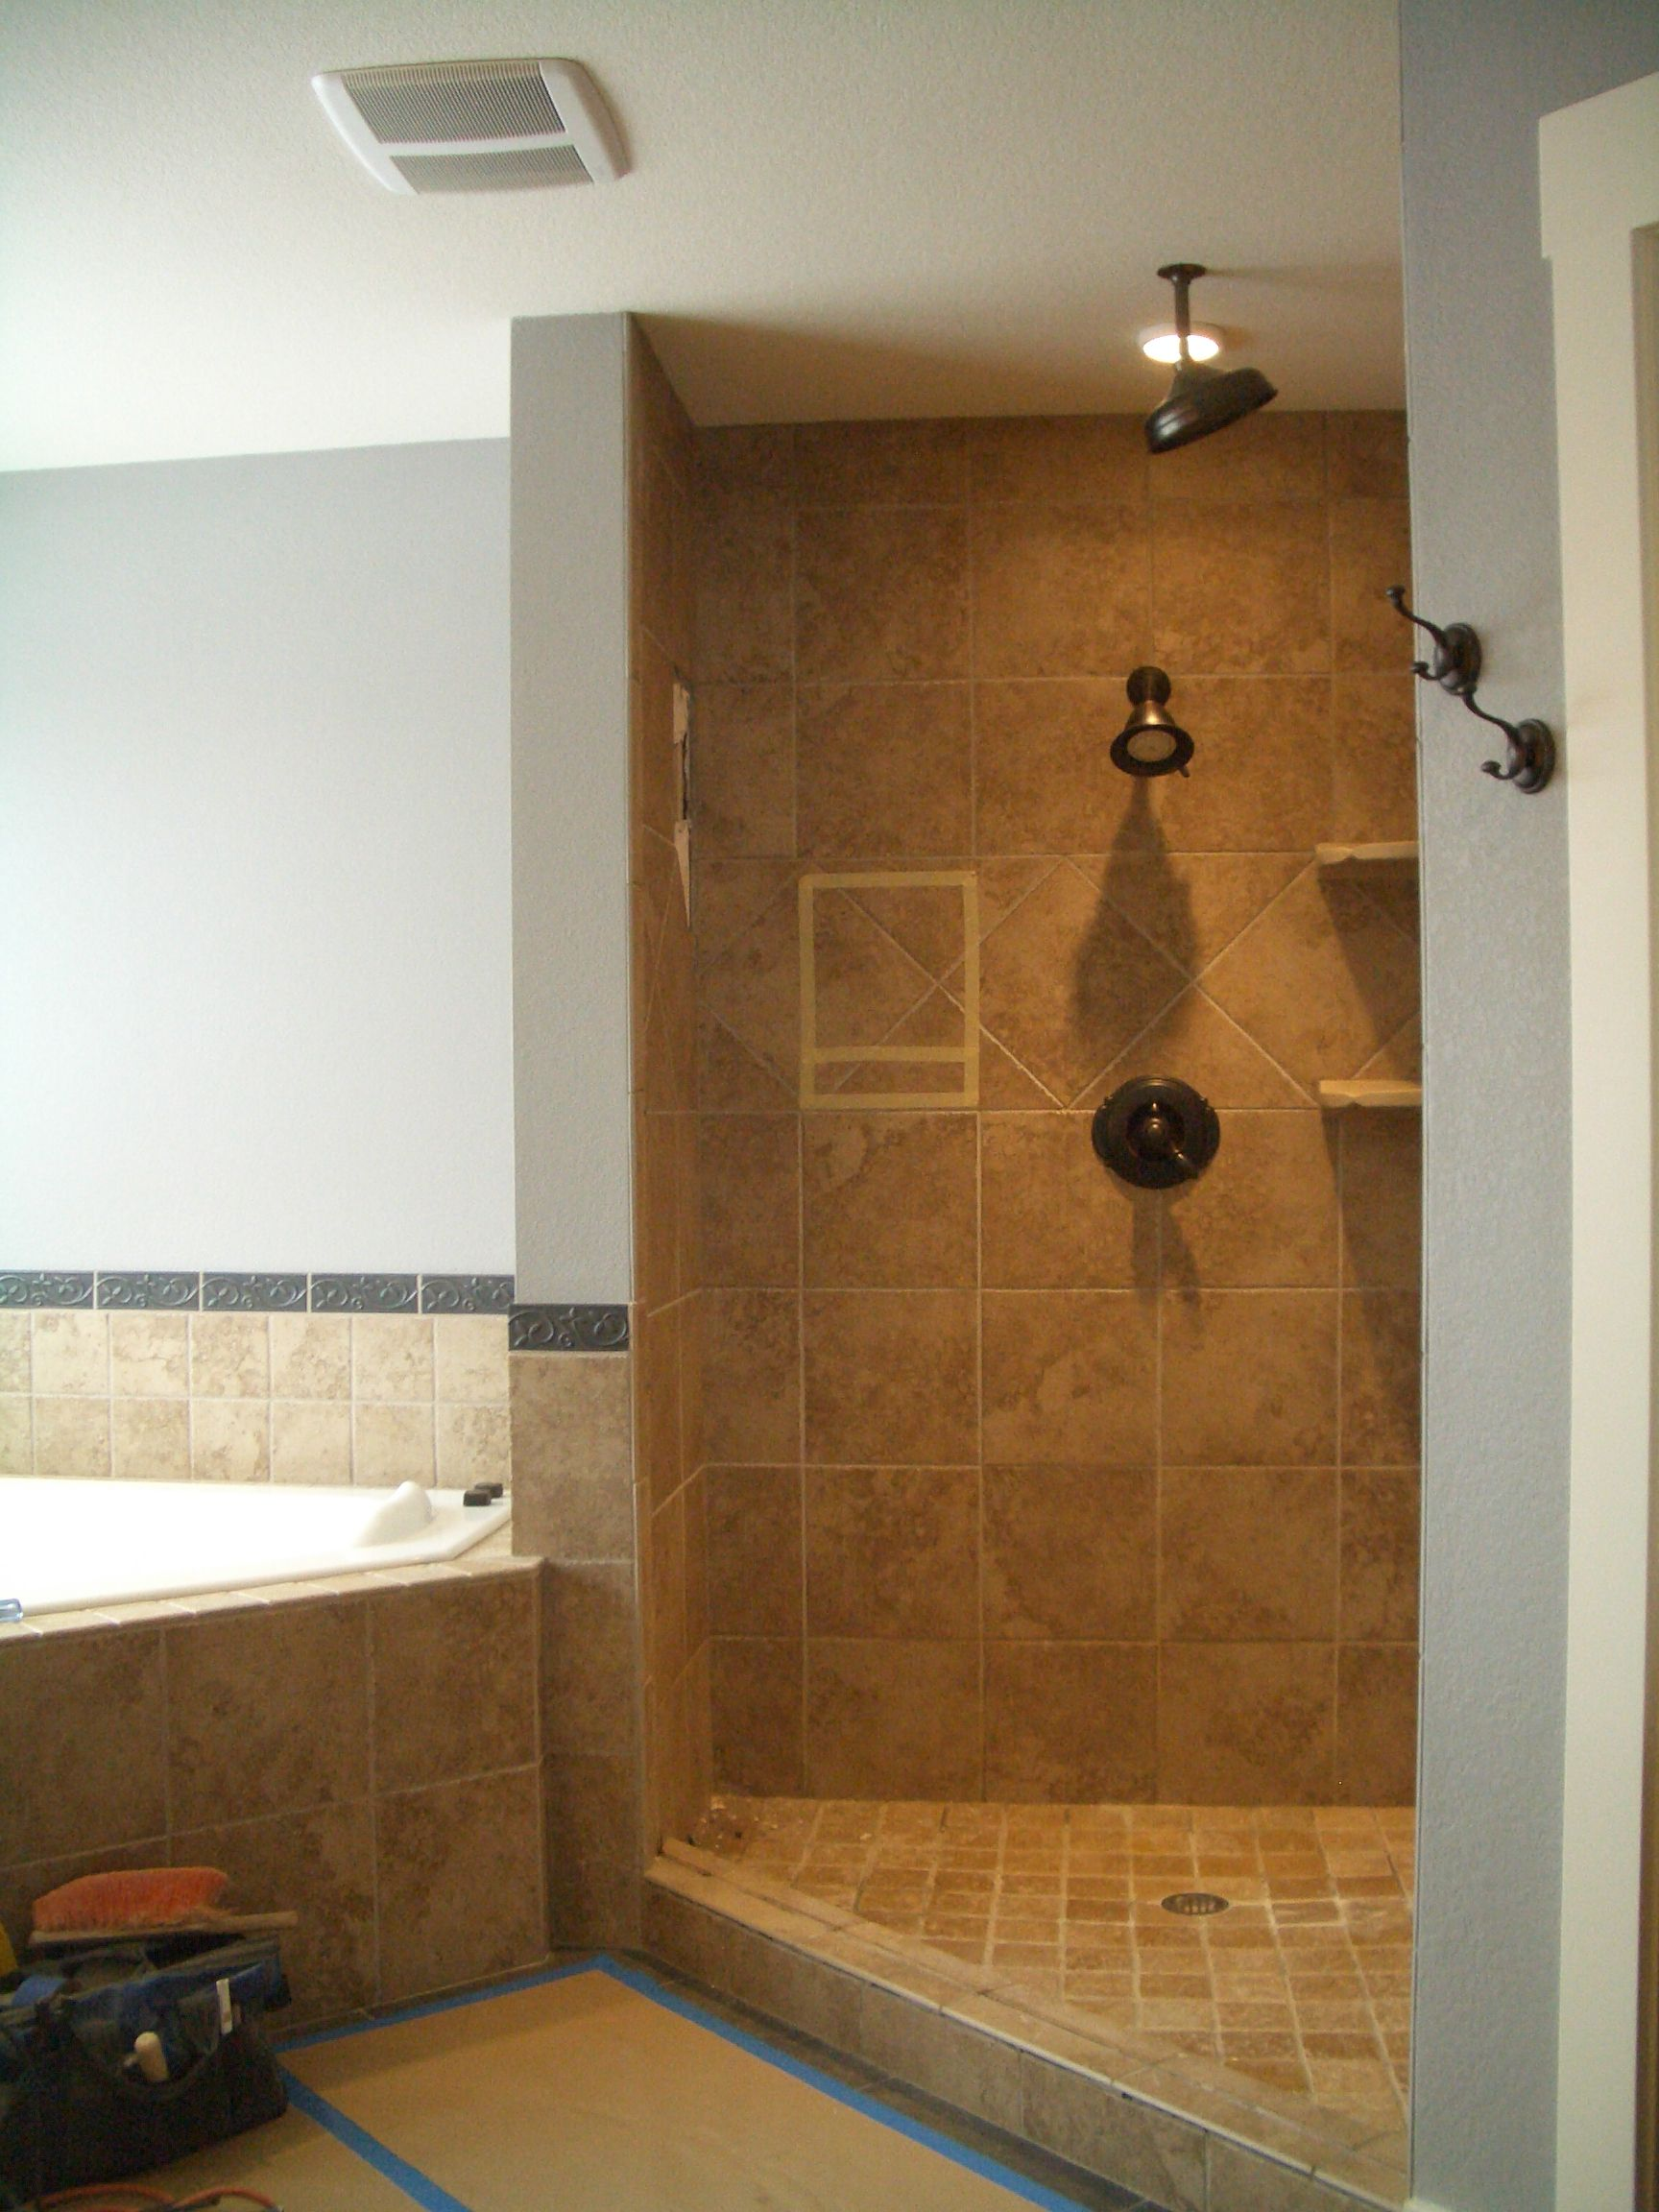 Bathroom Remodel No Tub bathroom shower remodel cost | ideas | pinterest | bathroom shower